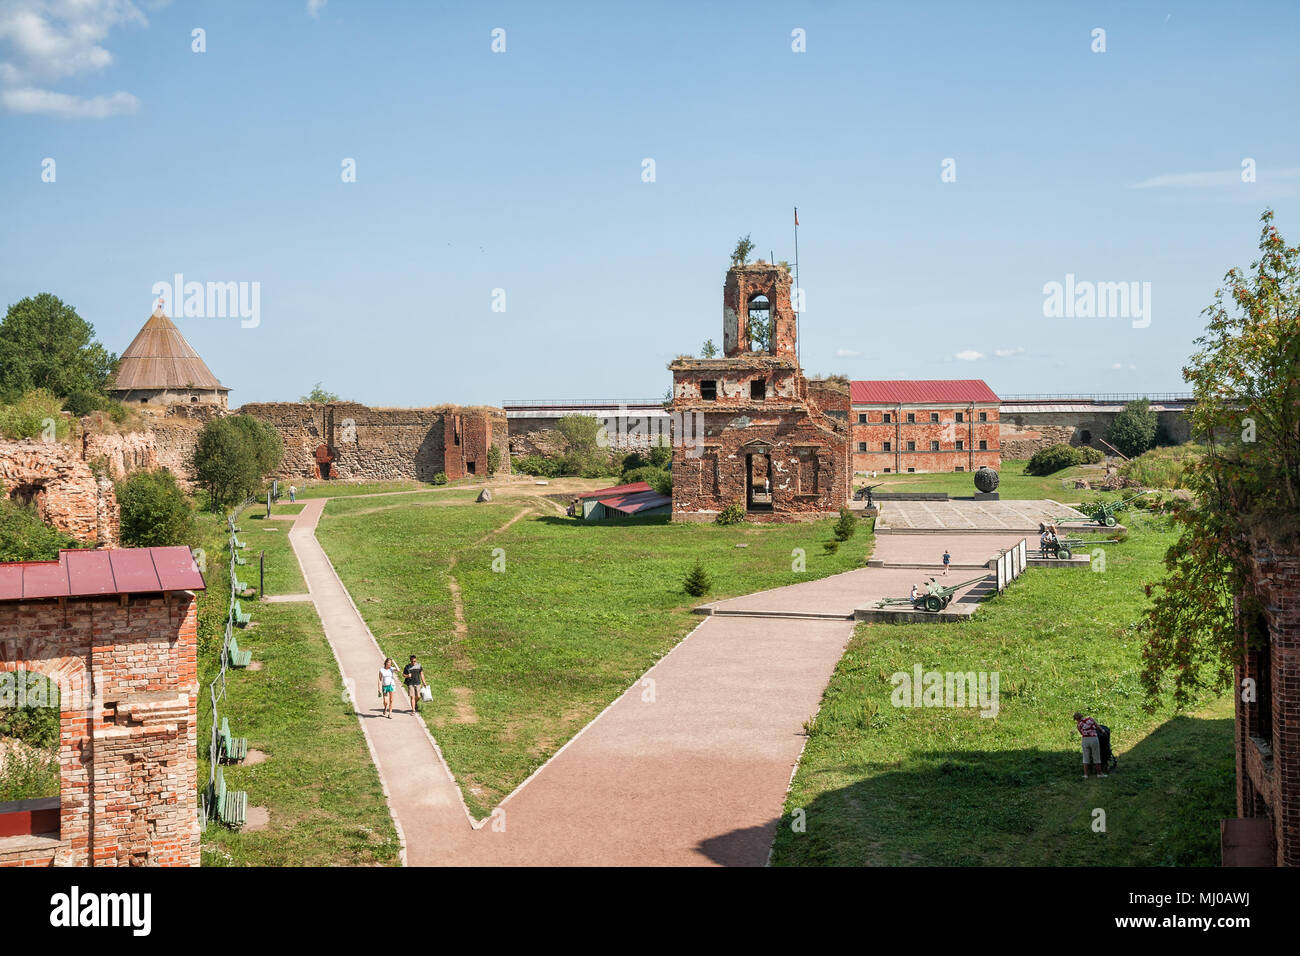 SHLISSELBURG, RUSSIA - AUGUST 02, 2014: People visit the fortress of Oreshek, a monument of the Great Patriotic War - Stock Image